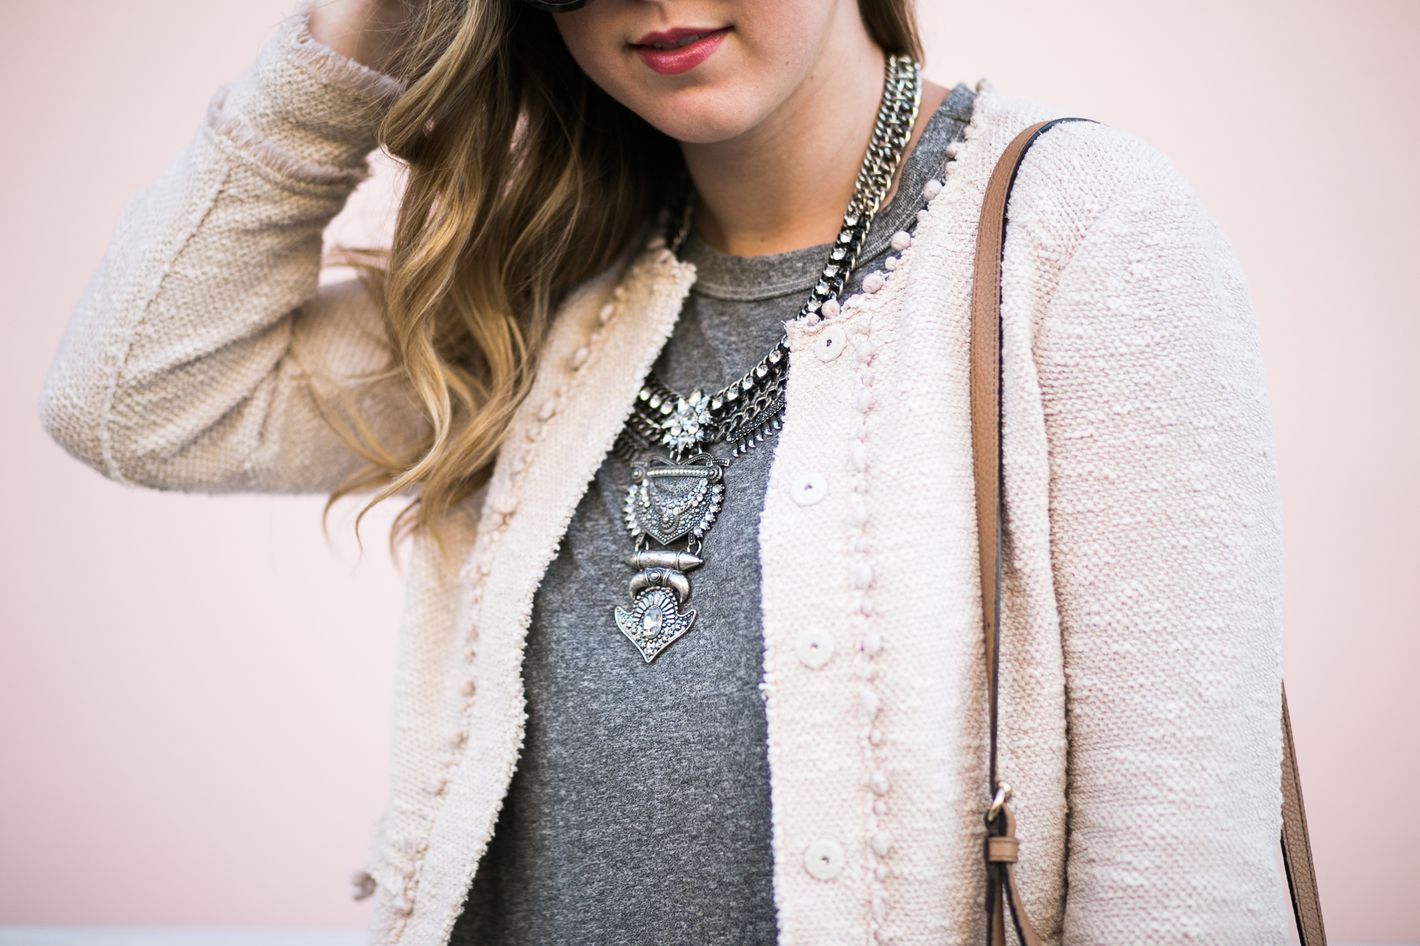 sidesmile-style-rtr-what-to-wear-to-friendsgiving-14